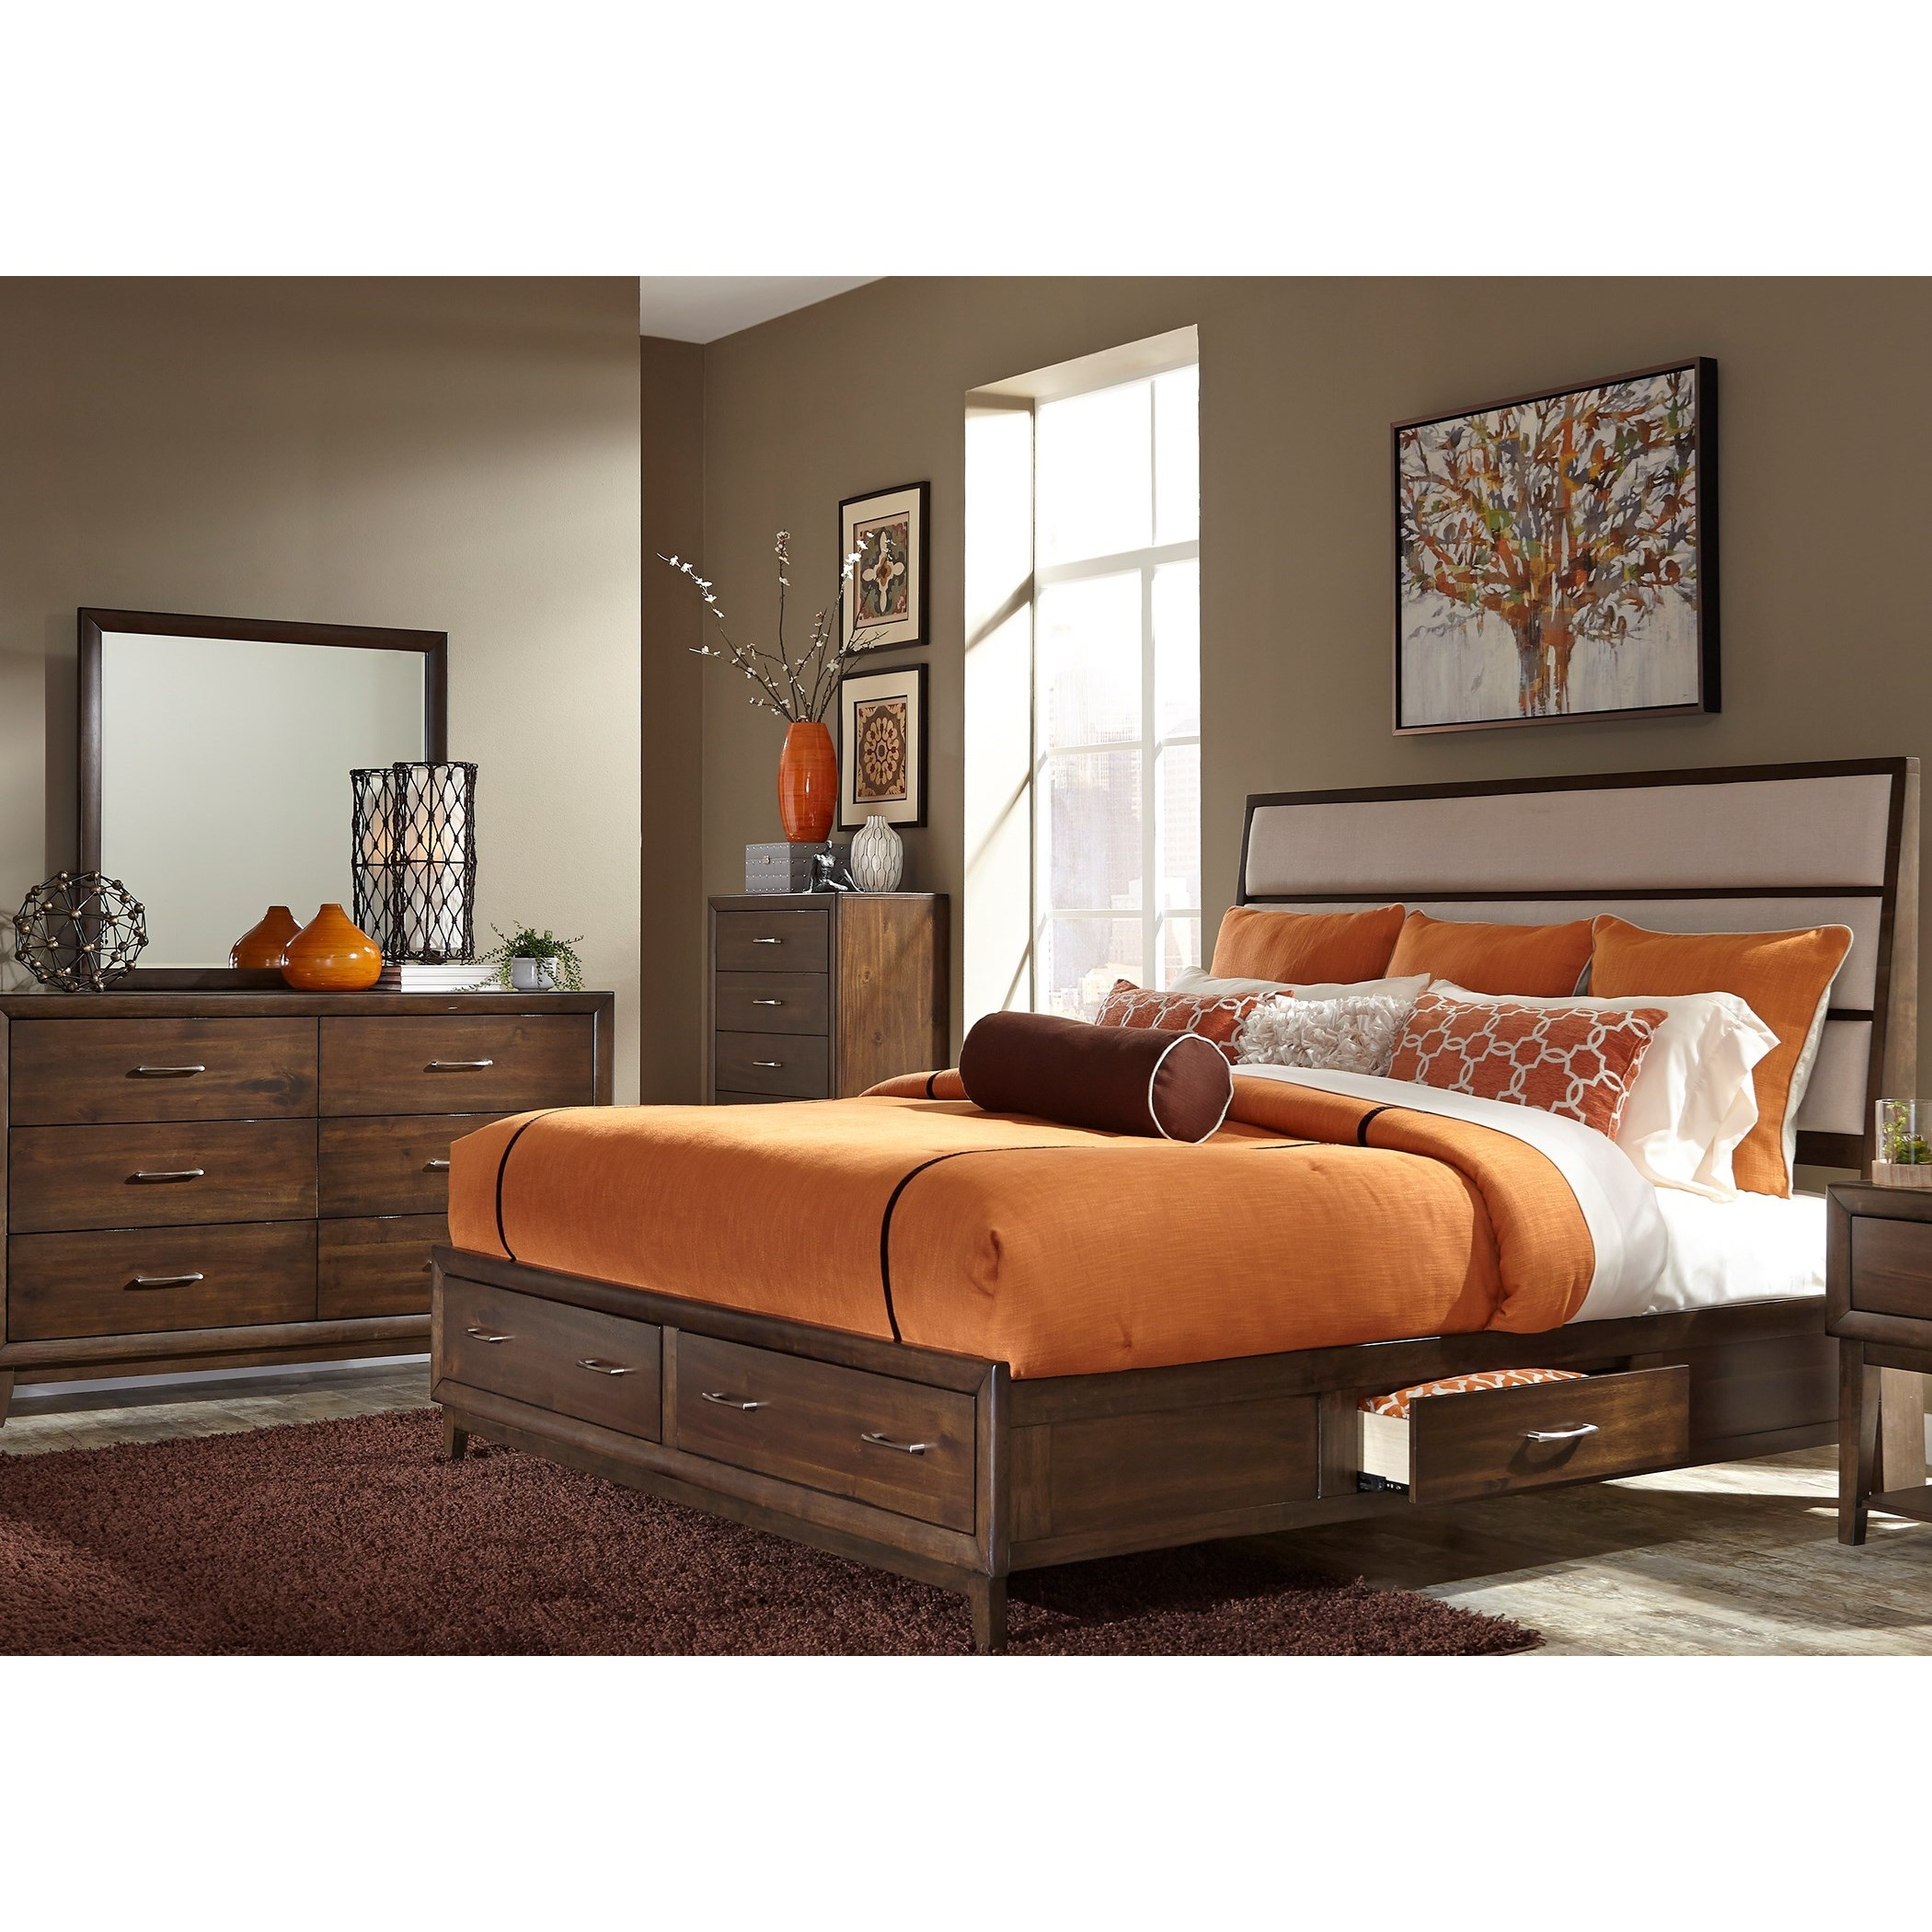 Liberty Furniture Hudson Square Bedroom Queen Bedroom Group - Item Number: 365-BR-Q2SDMC